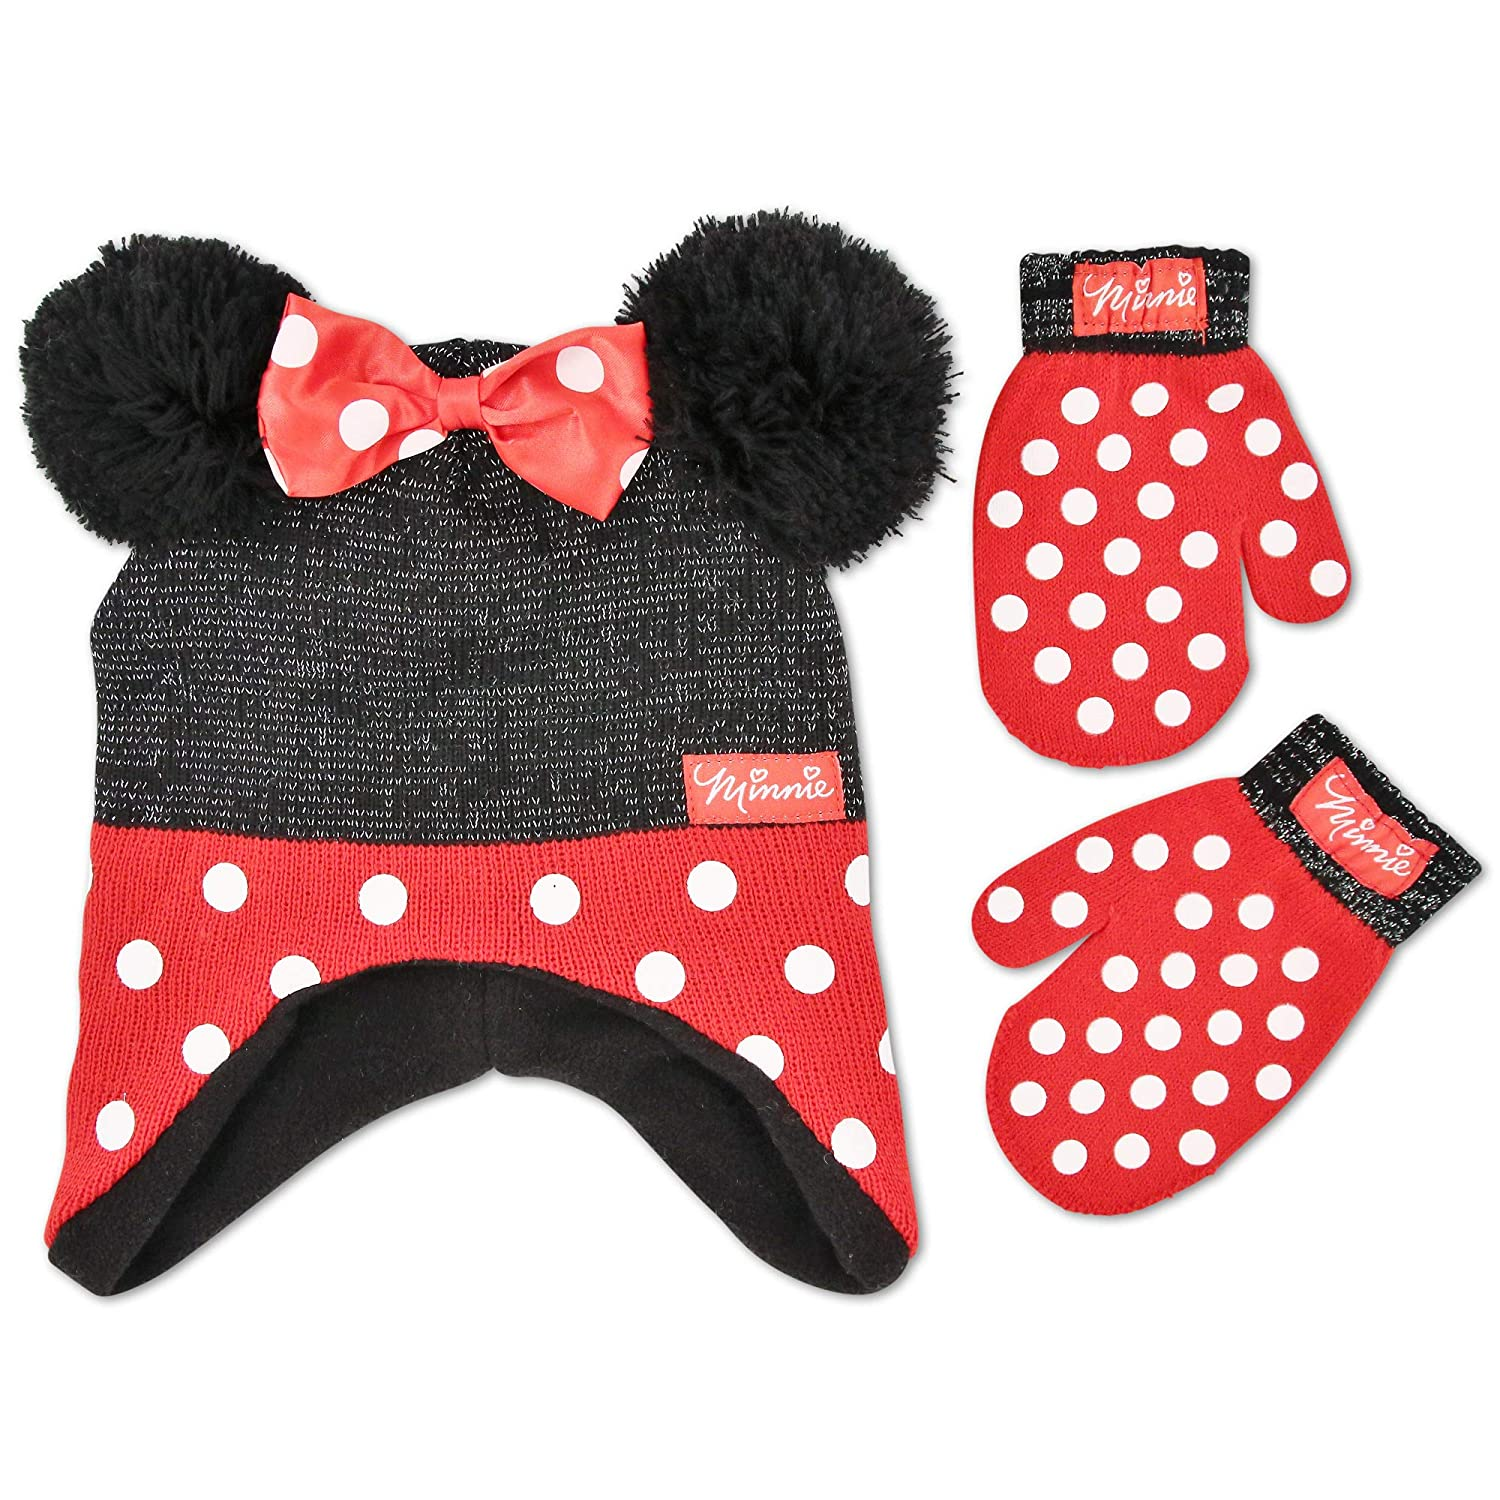 Disney Minnie Mouse Hat and Mittens Cold Weather Set, Toddler Girls, Ages 2-4 ABG Accessories MBF69601AP1